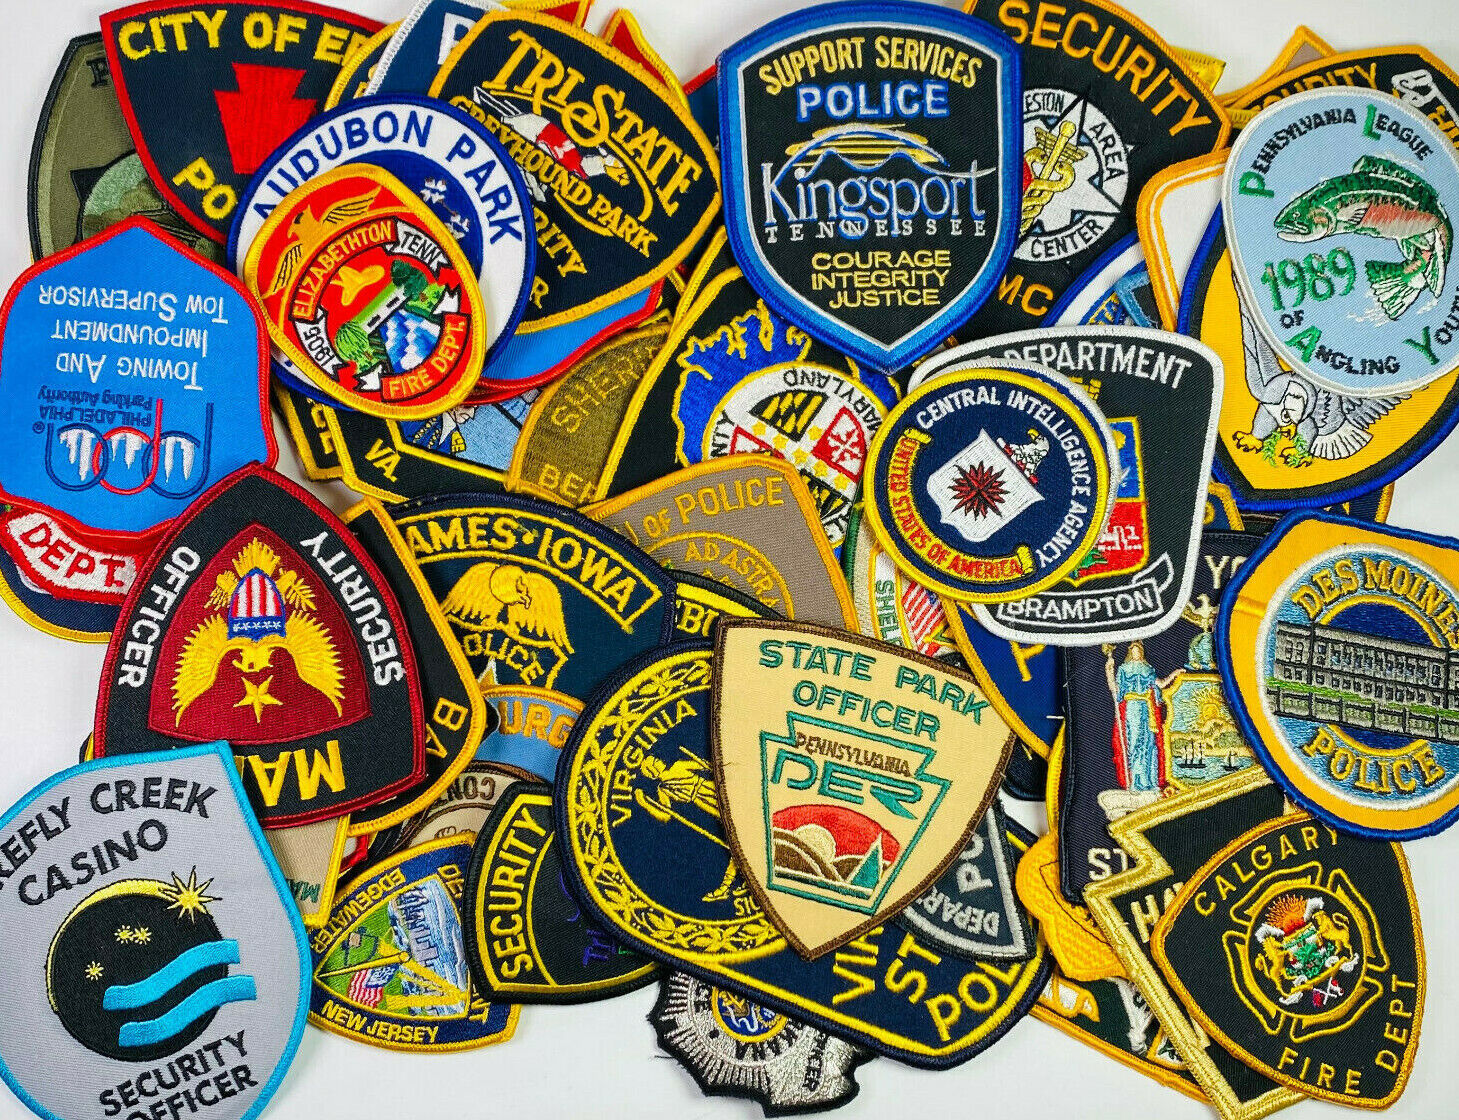 Image 1 - 80 Police Sheriff Fire EMS Security Patches Huge Collection Delaer Lot (C)